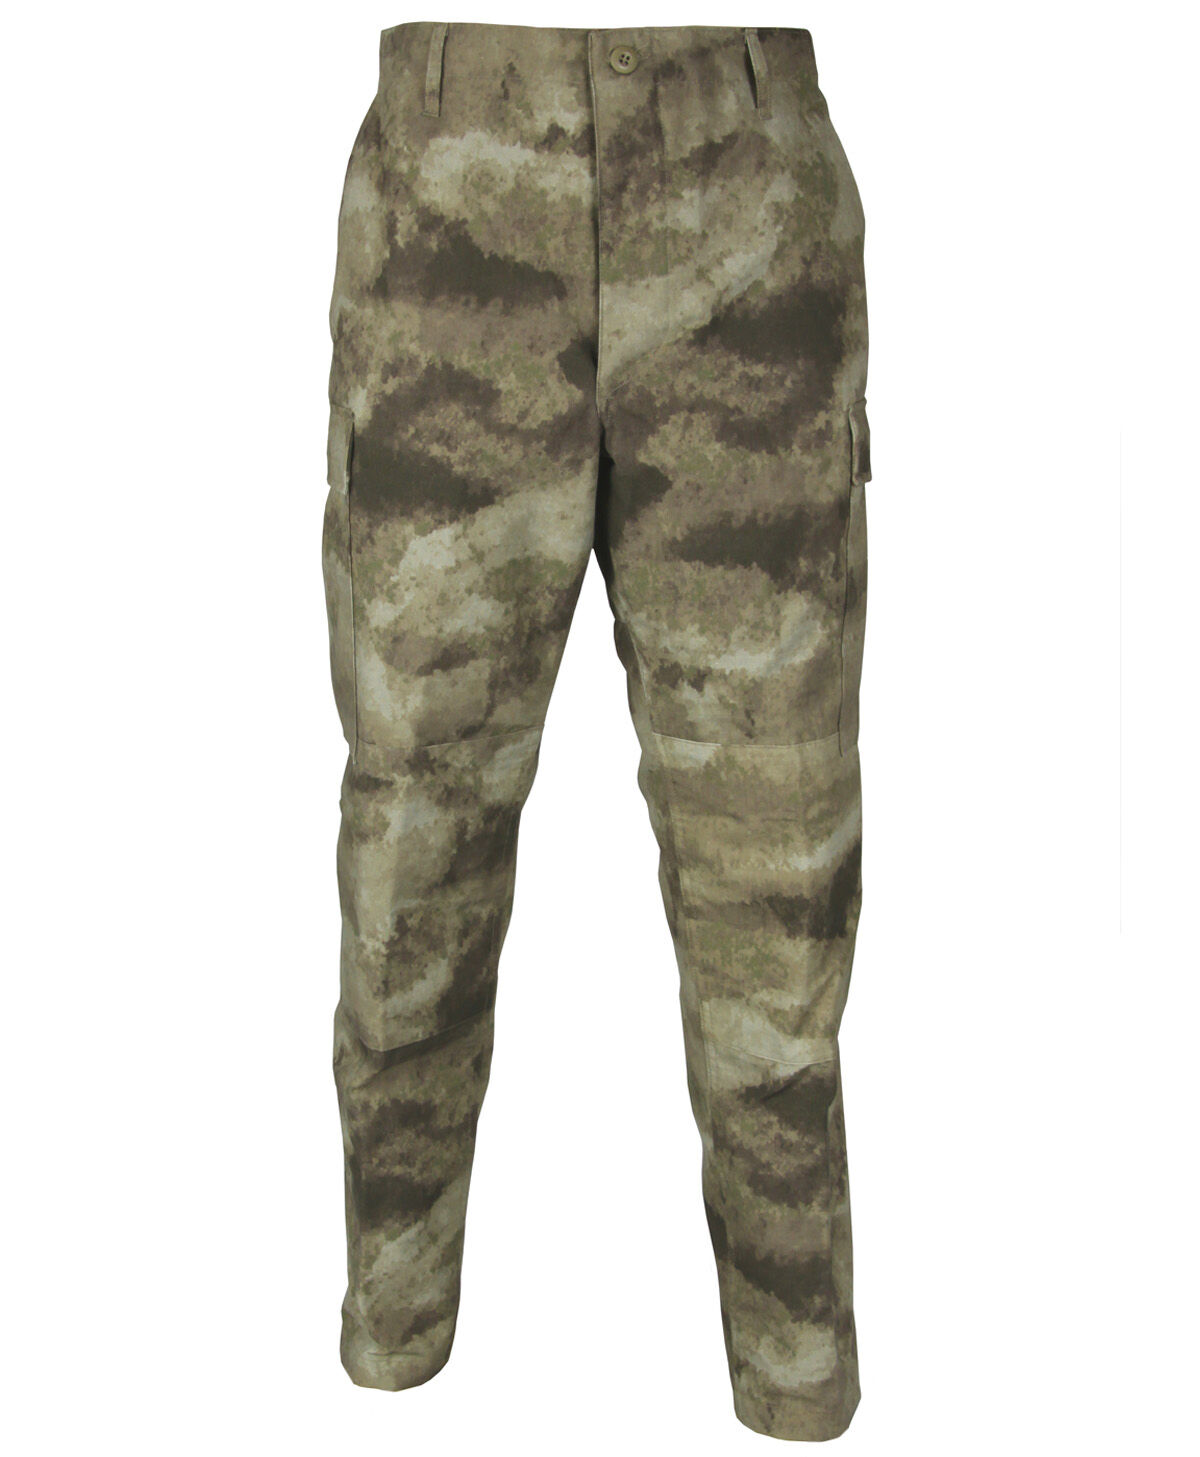 A-TACS AU Camo BDU Military Uniform Pant by PROPPER F5201